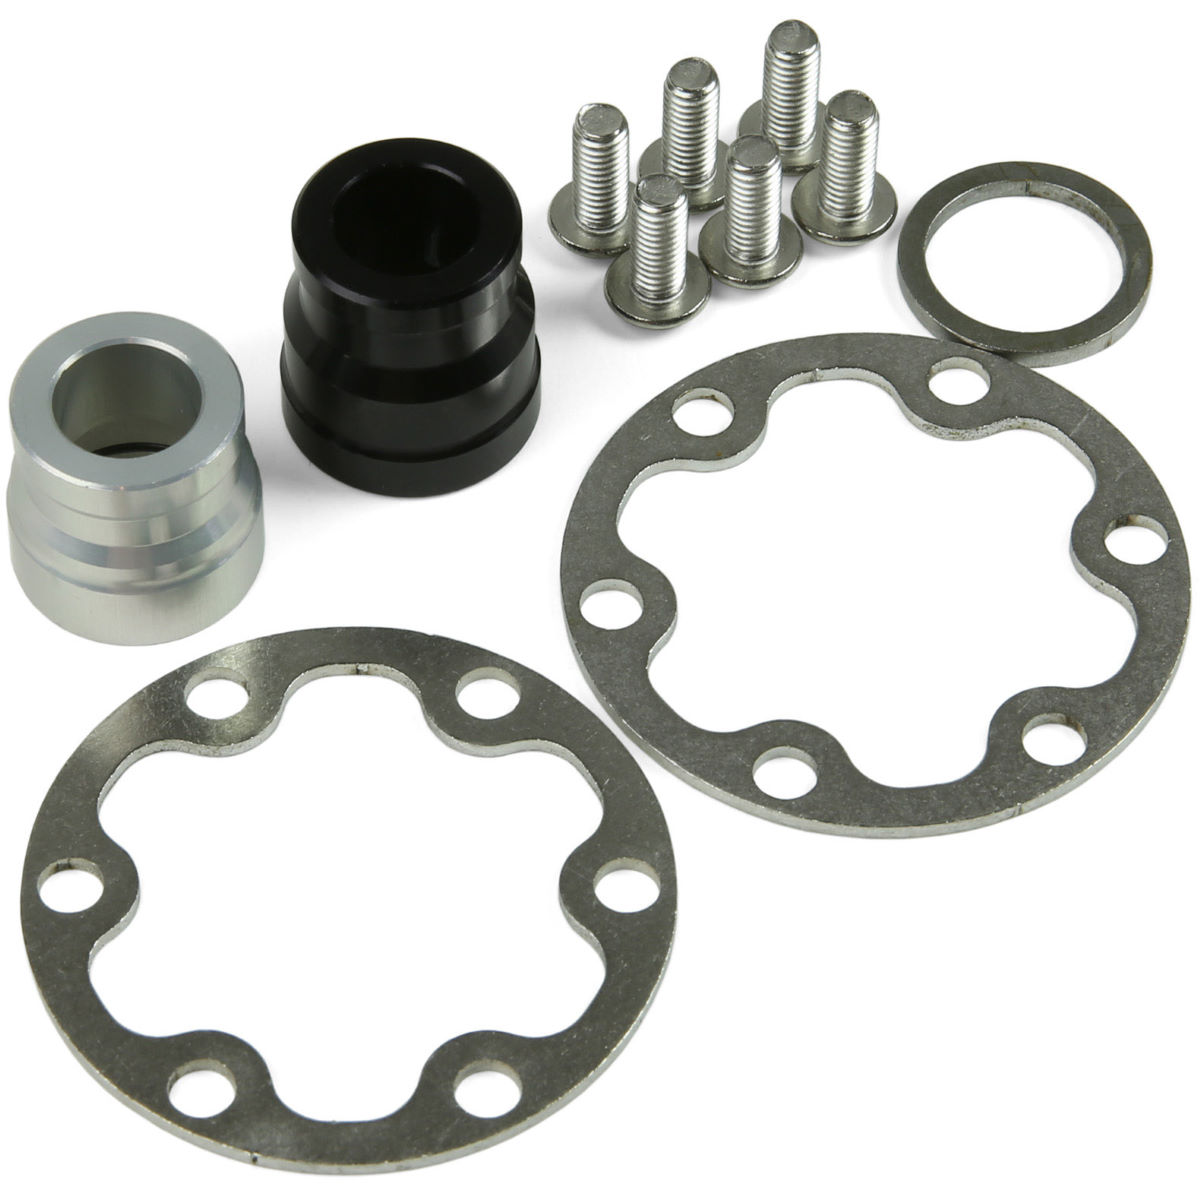 Hope Pro 4 148mm Boost Conversion Kit - One Size  Wheel Hub Spares